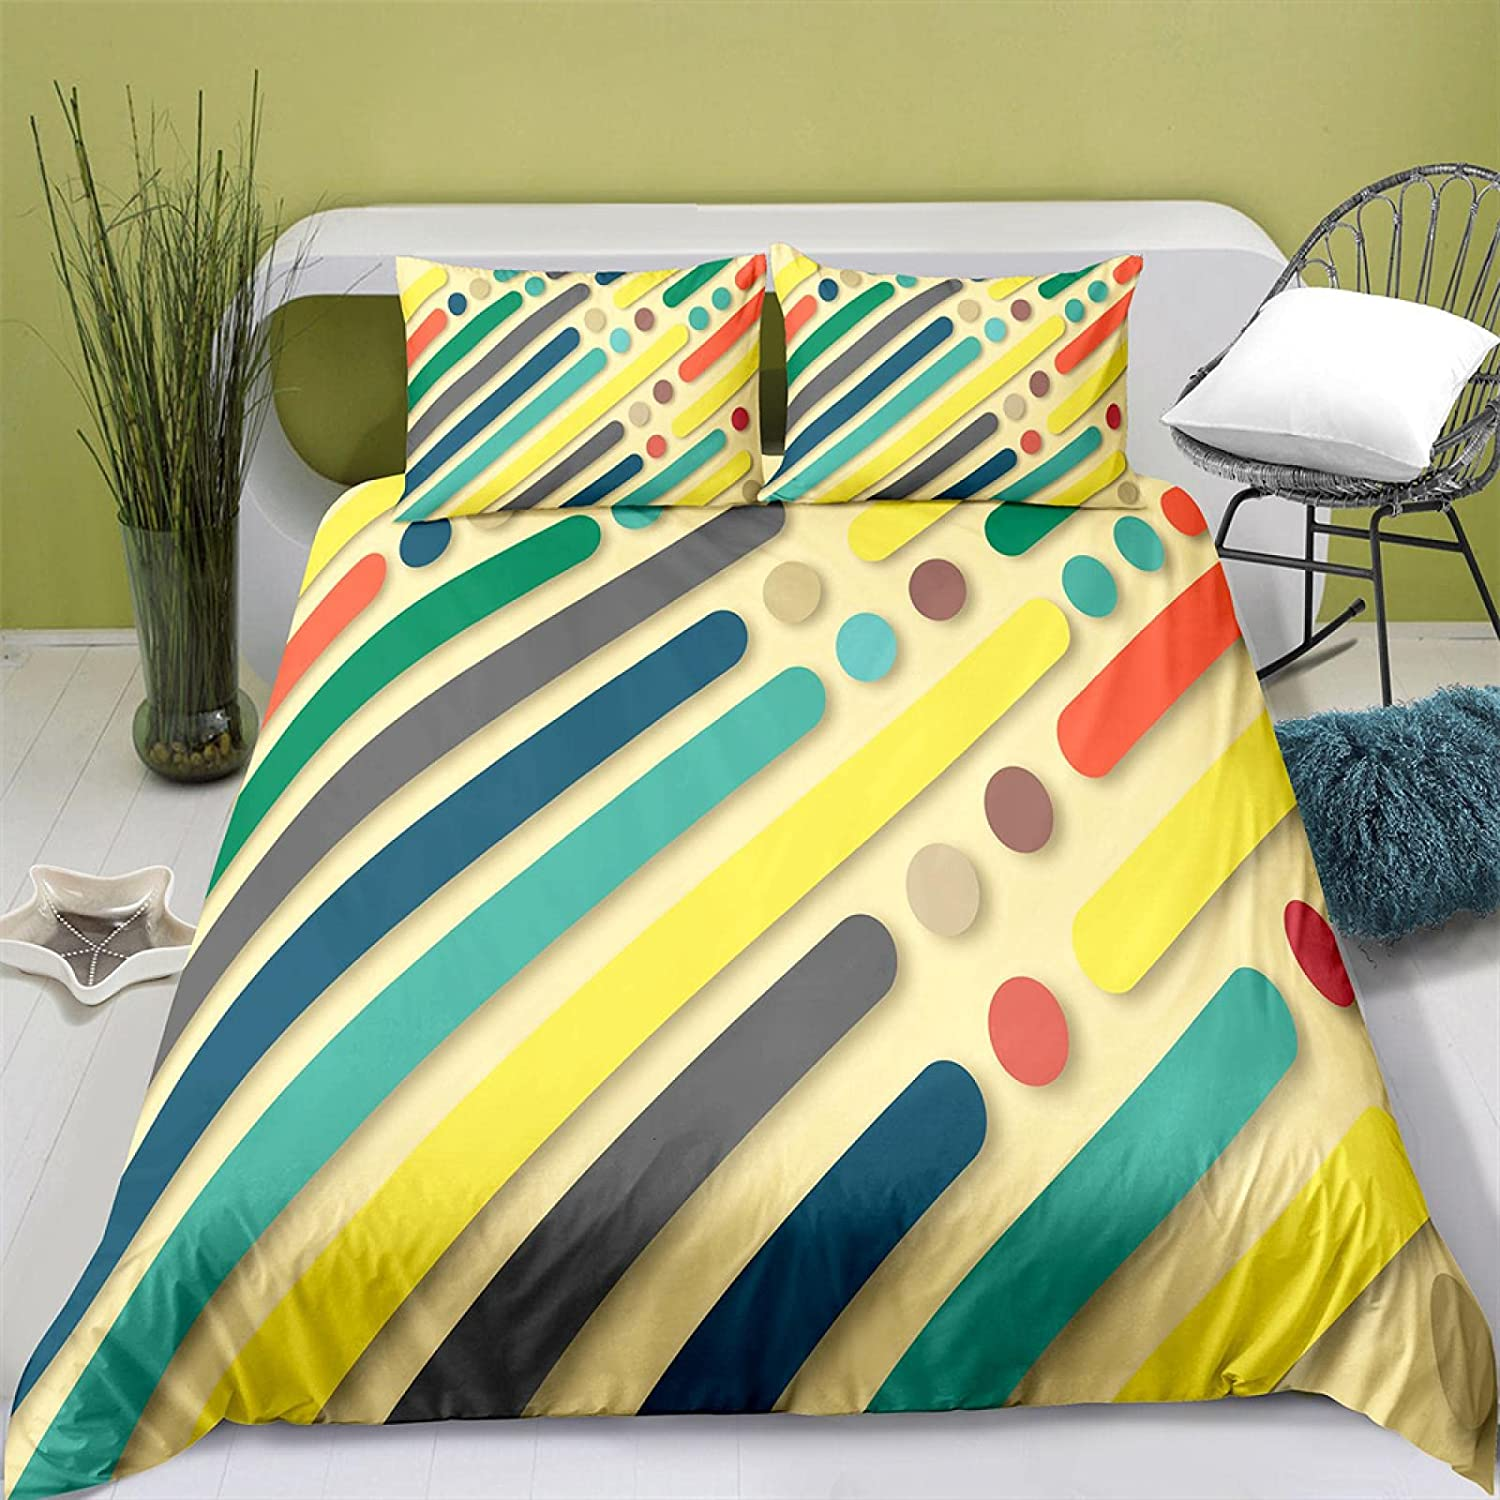 NEW before selling ☆ HQHM Duvet Cover King 3 Pieces Max 41% OFF Color Line 79X79 Wave 3D Inch Art